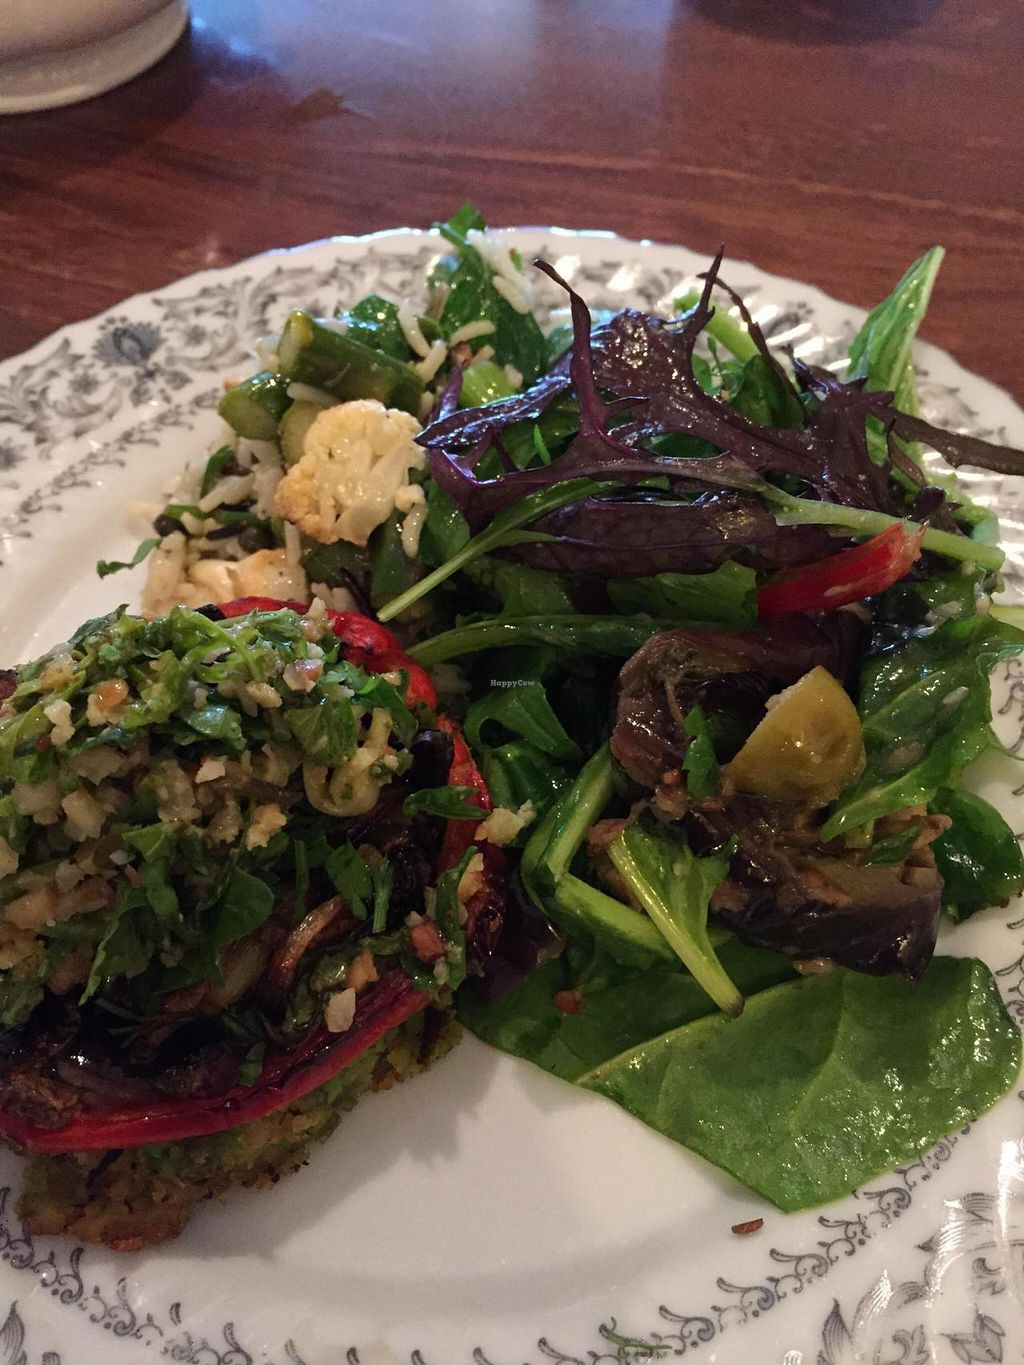 """Photo of Skye Pie Cafe  by <a href=""""/members/profile/Raqui"""">Raqui</a> <br/>Vegan tart with option of side salads. Tart has polenta (cornmeal crust) base and grains and veg on top with lovely light sauce. Salads were greens, grilled eggplant and rice pilaf <br/> June 4, 2015  - <a href='/contact/abuse/image/59044/104746'>Report</a>"""